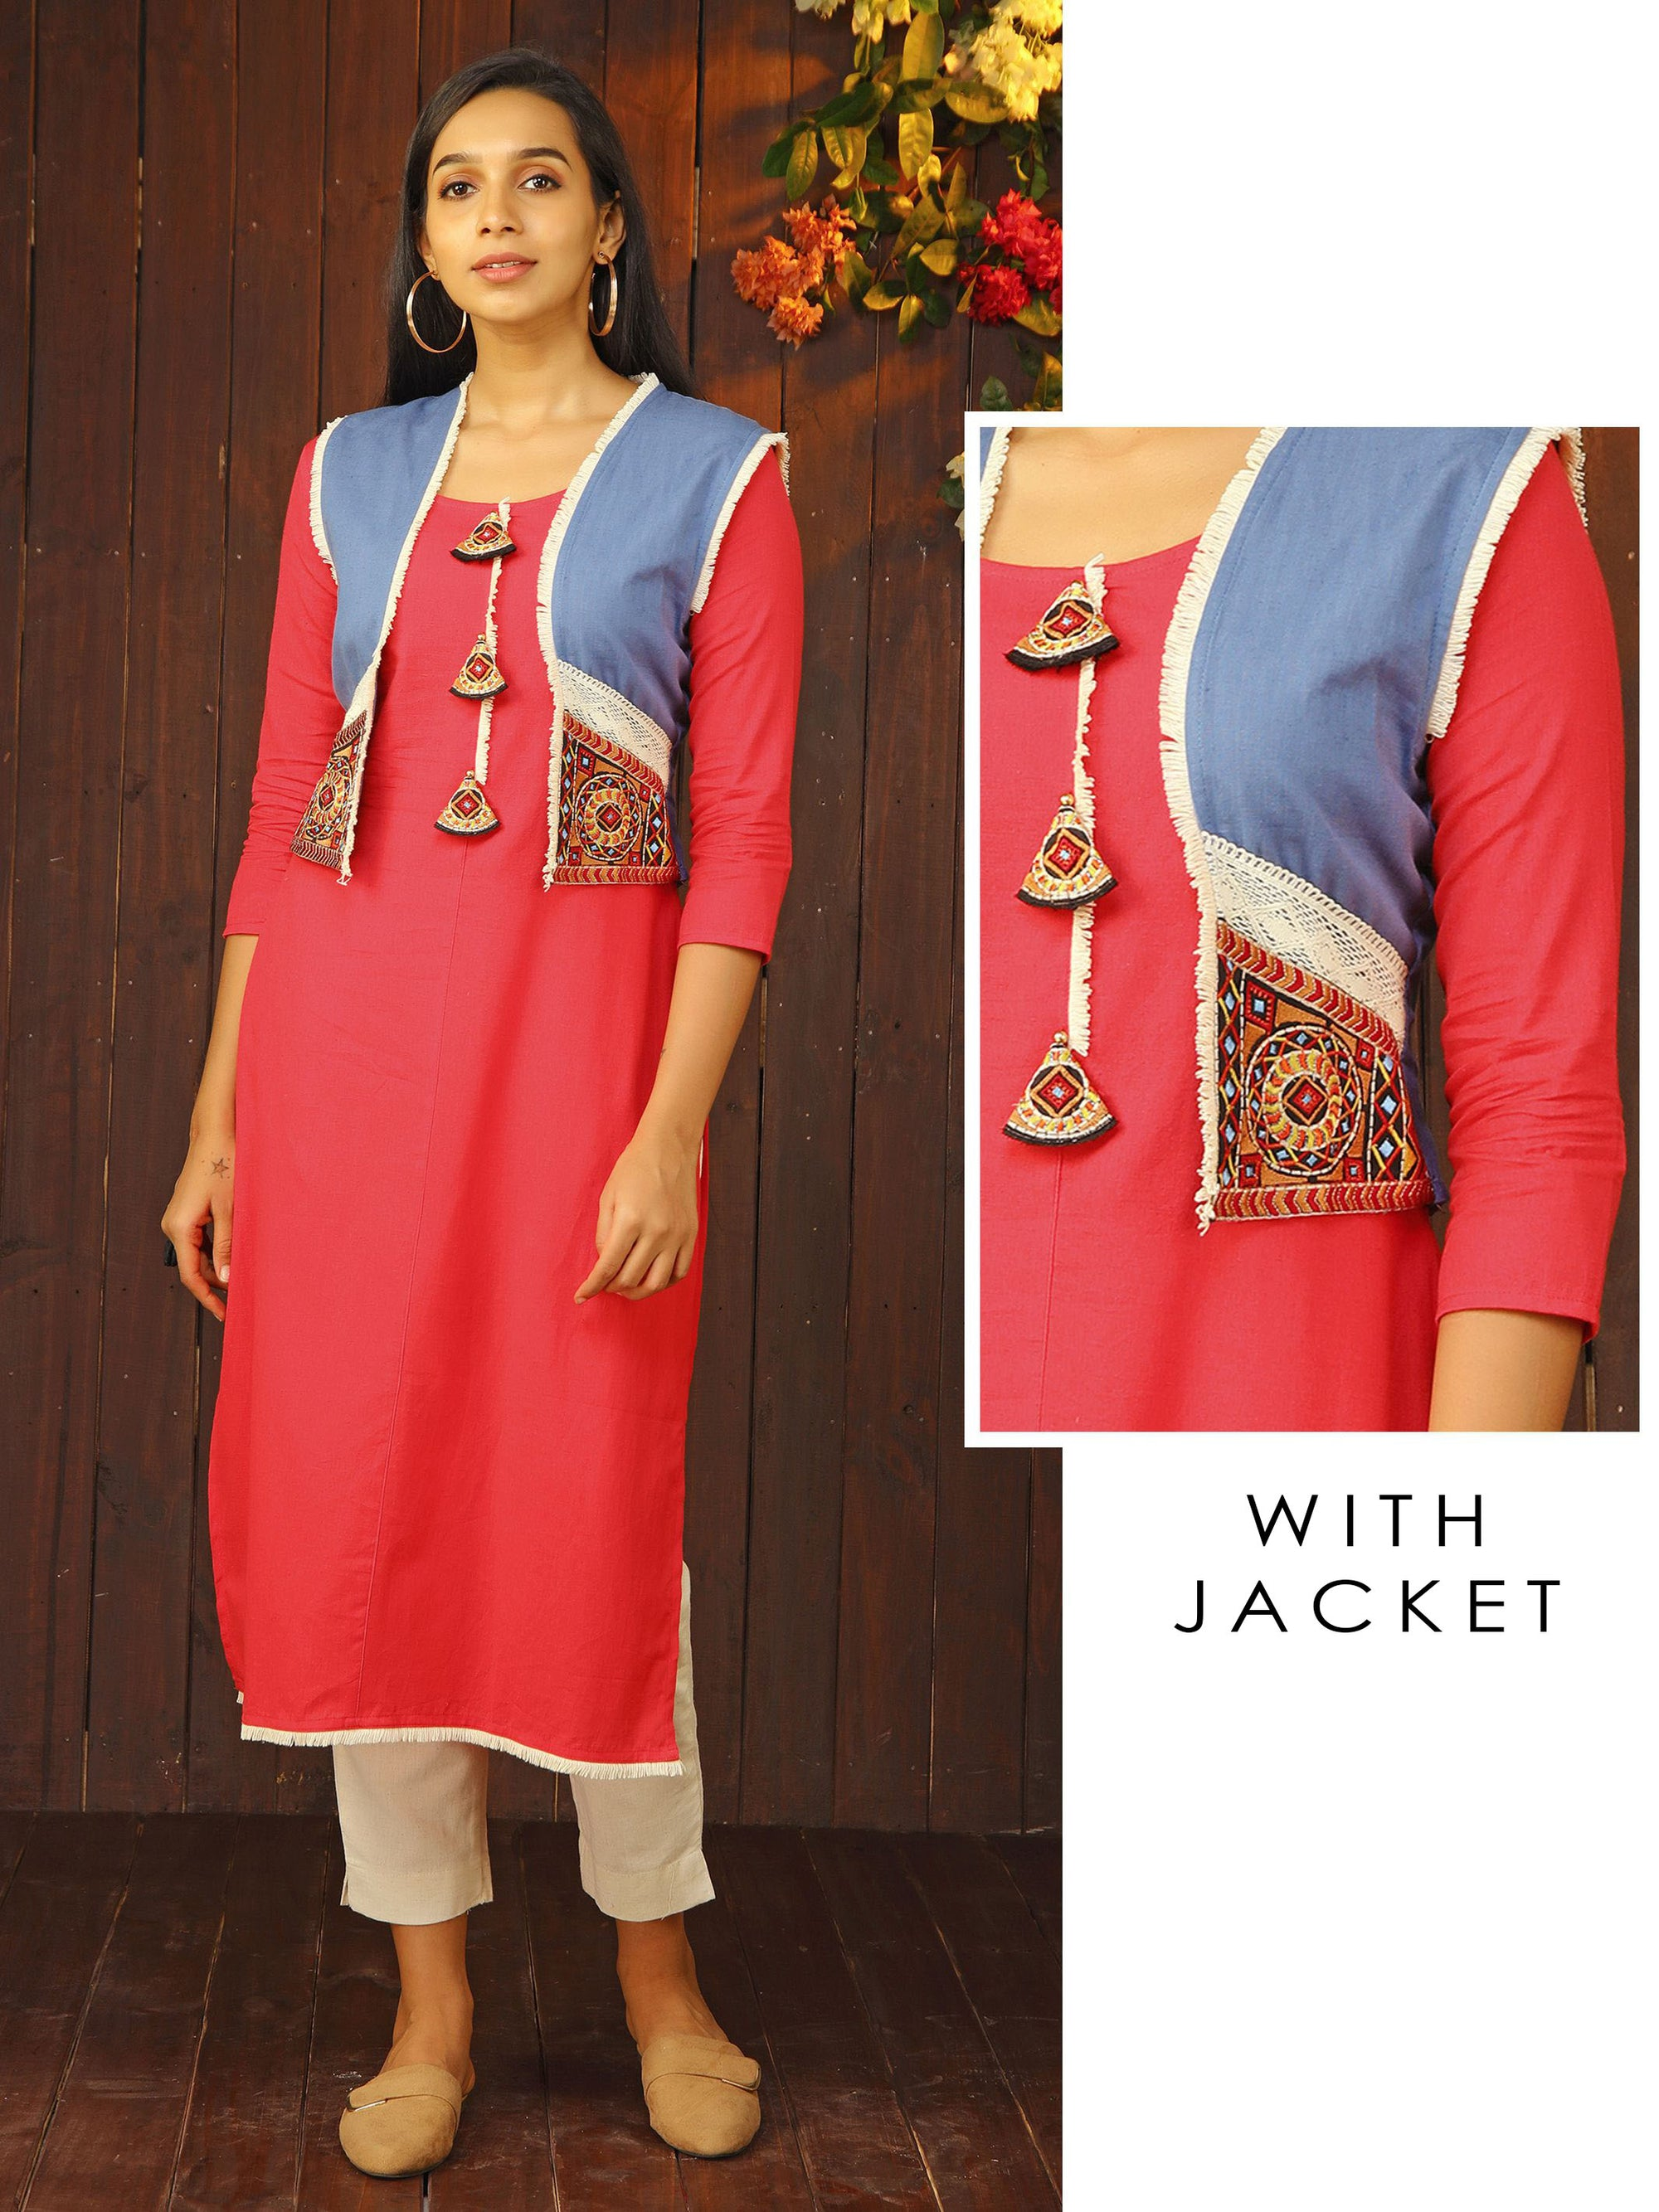 Embroidered Tassel Kurti & Jacket with Fringes